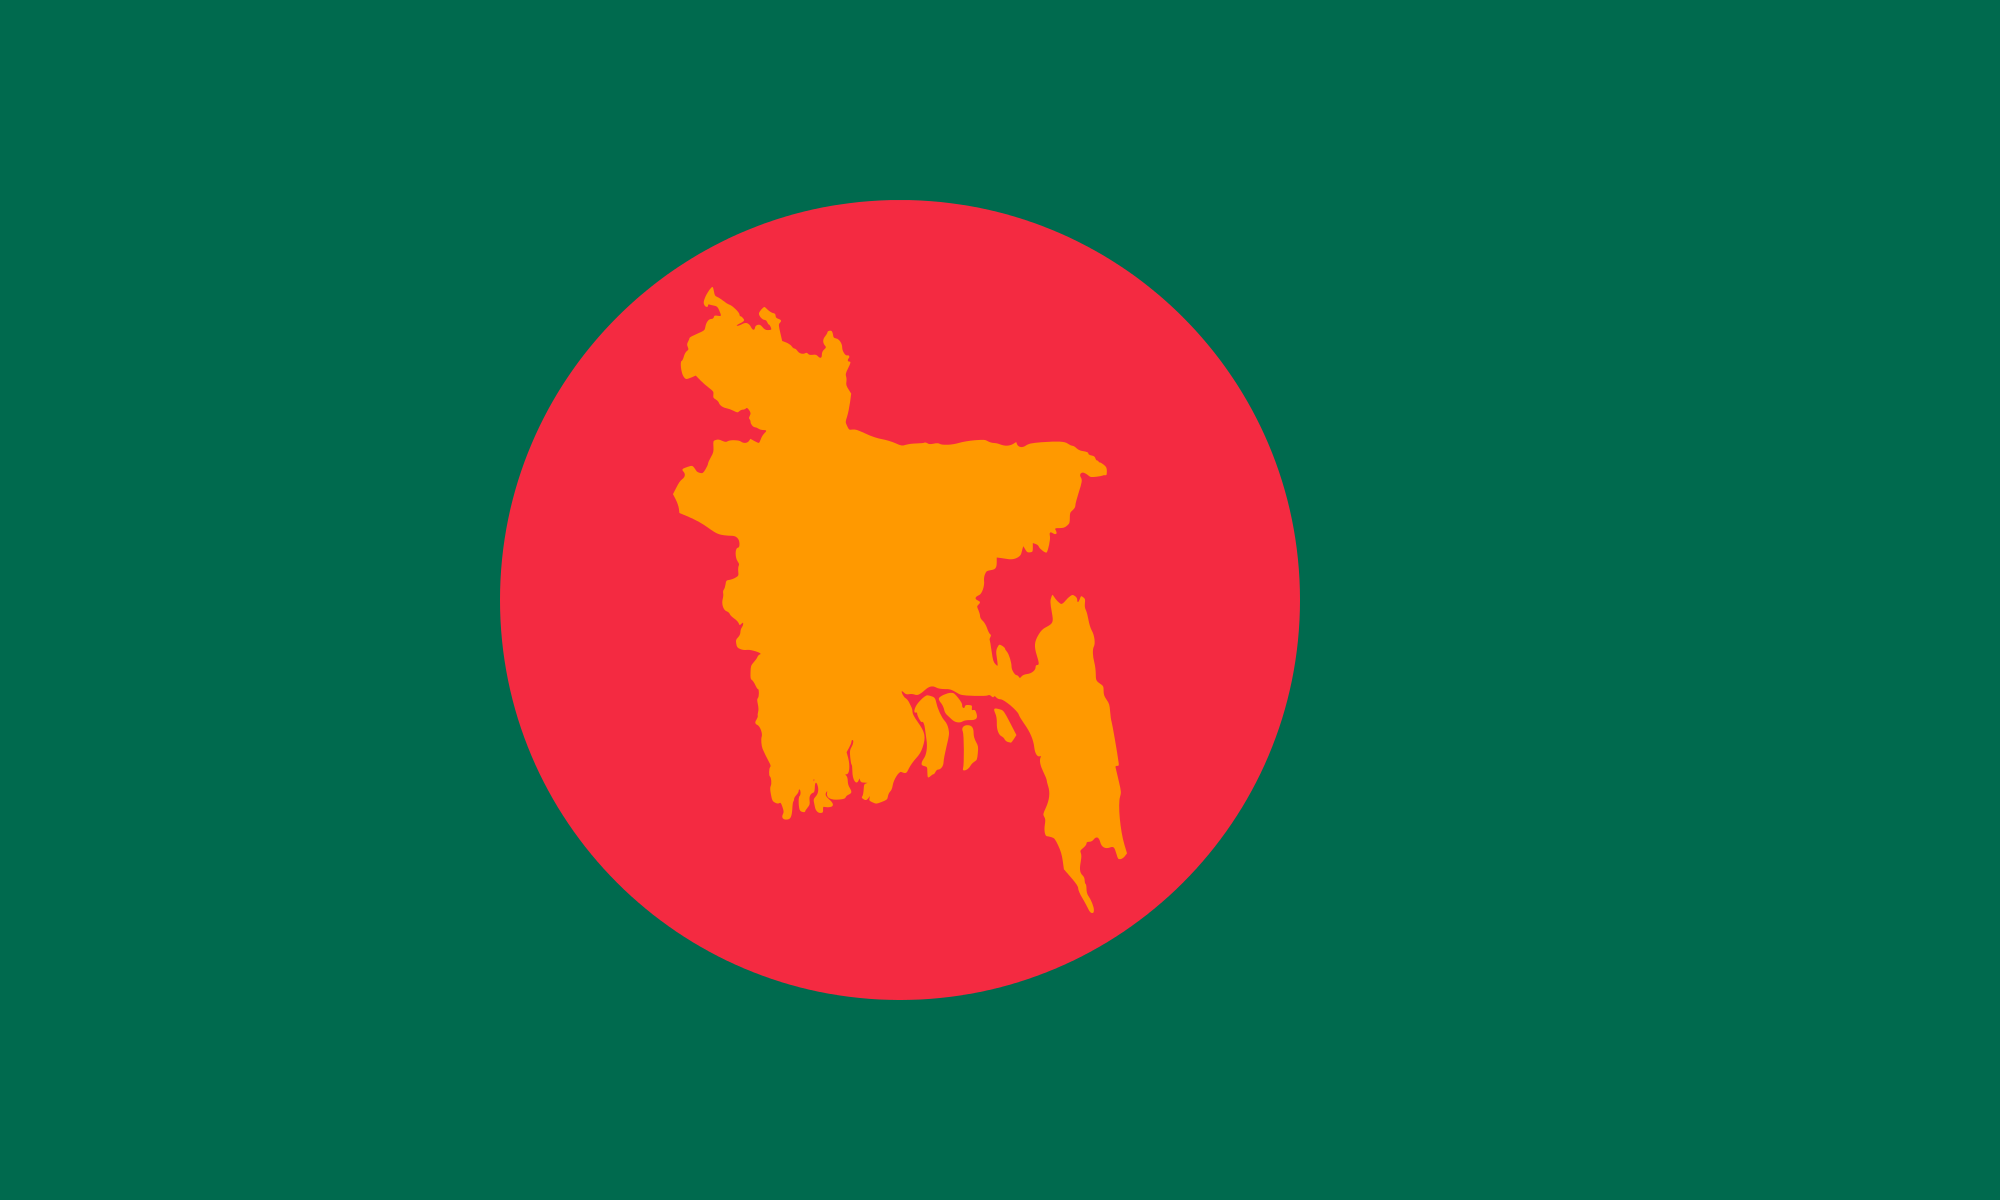 Bangladesh Independence Day 14